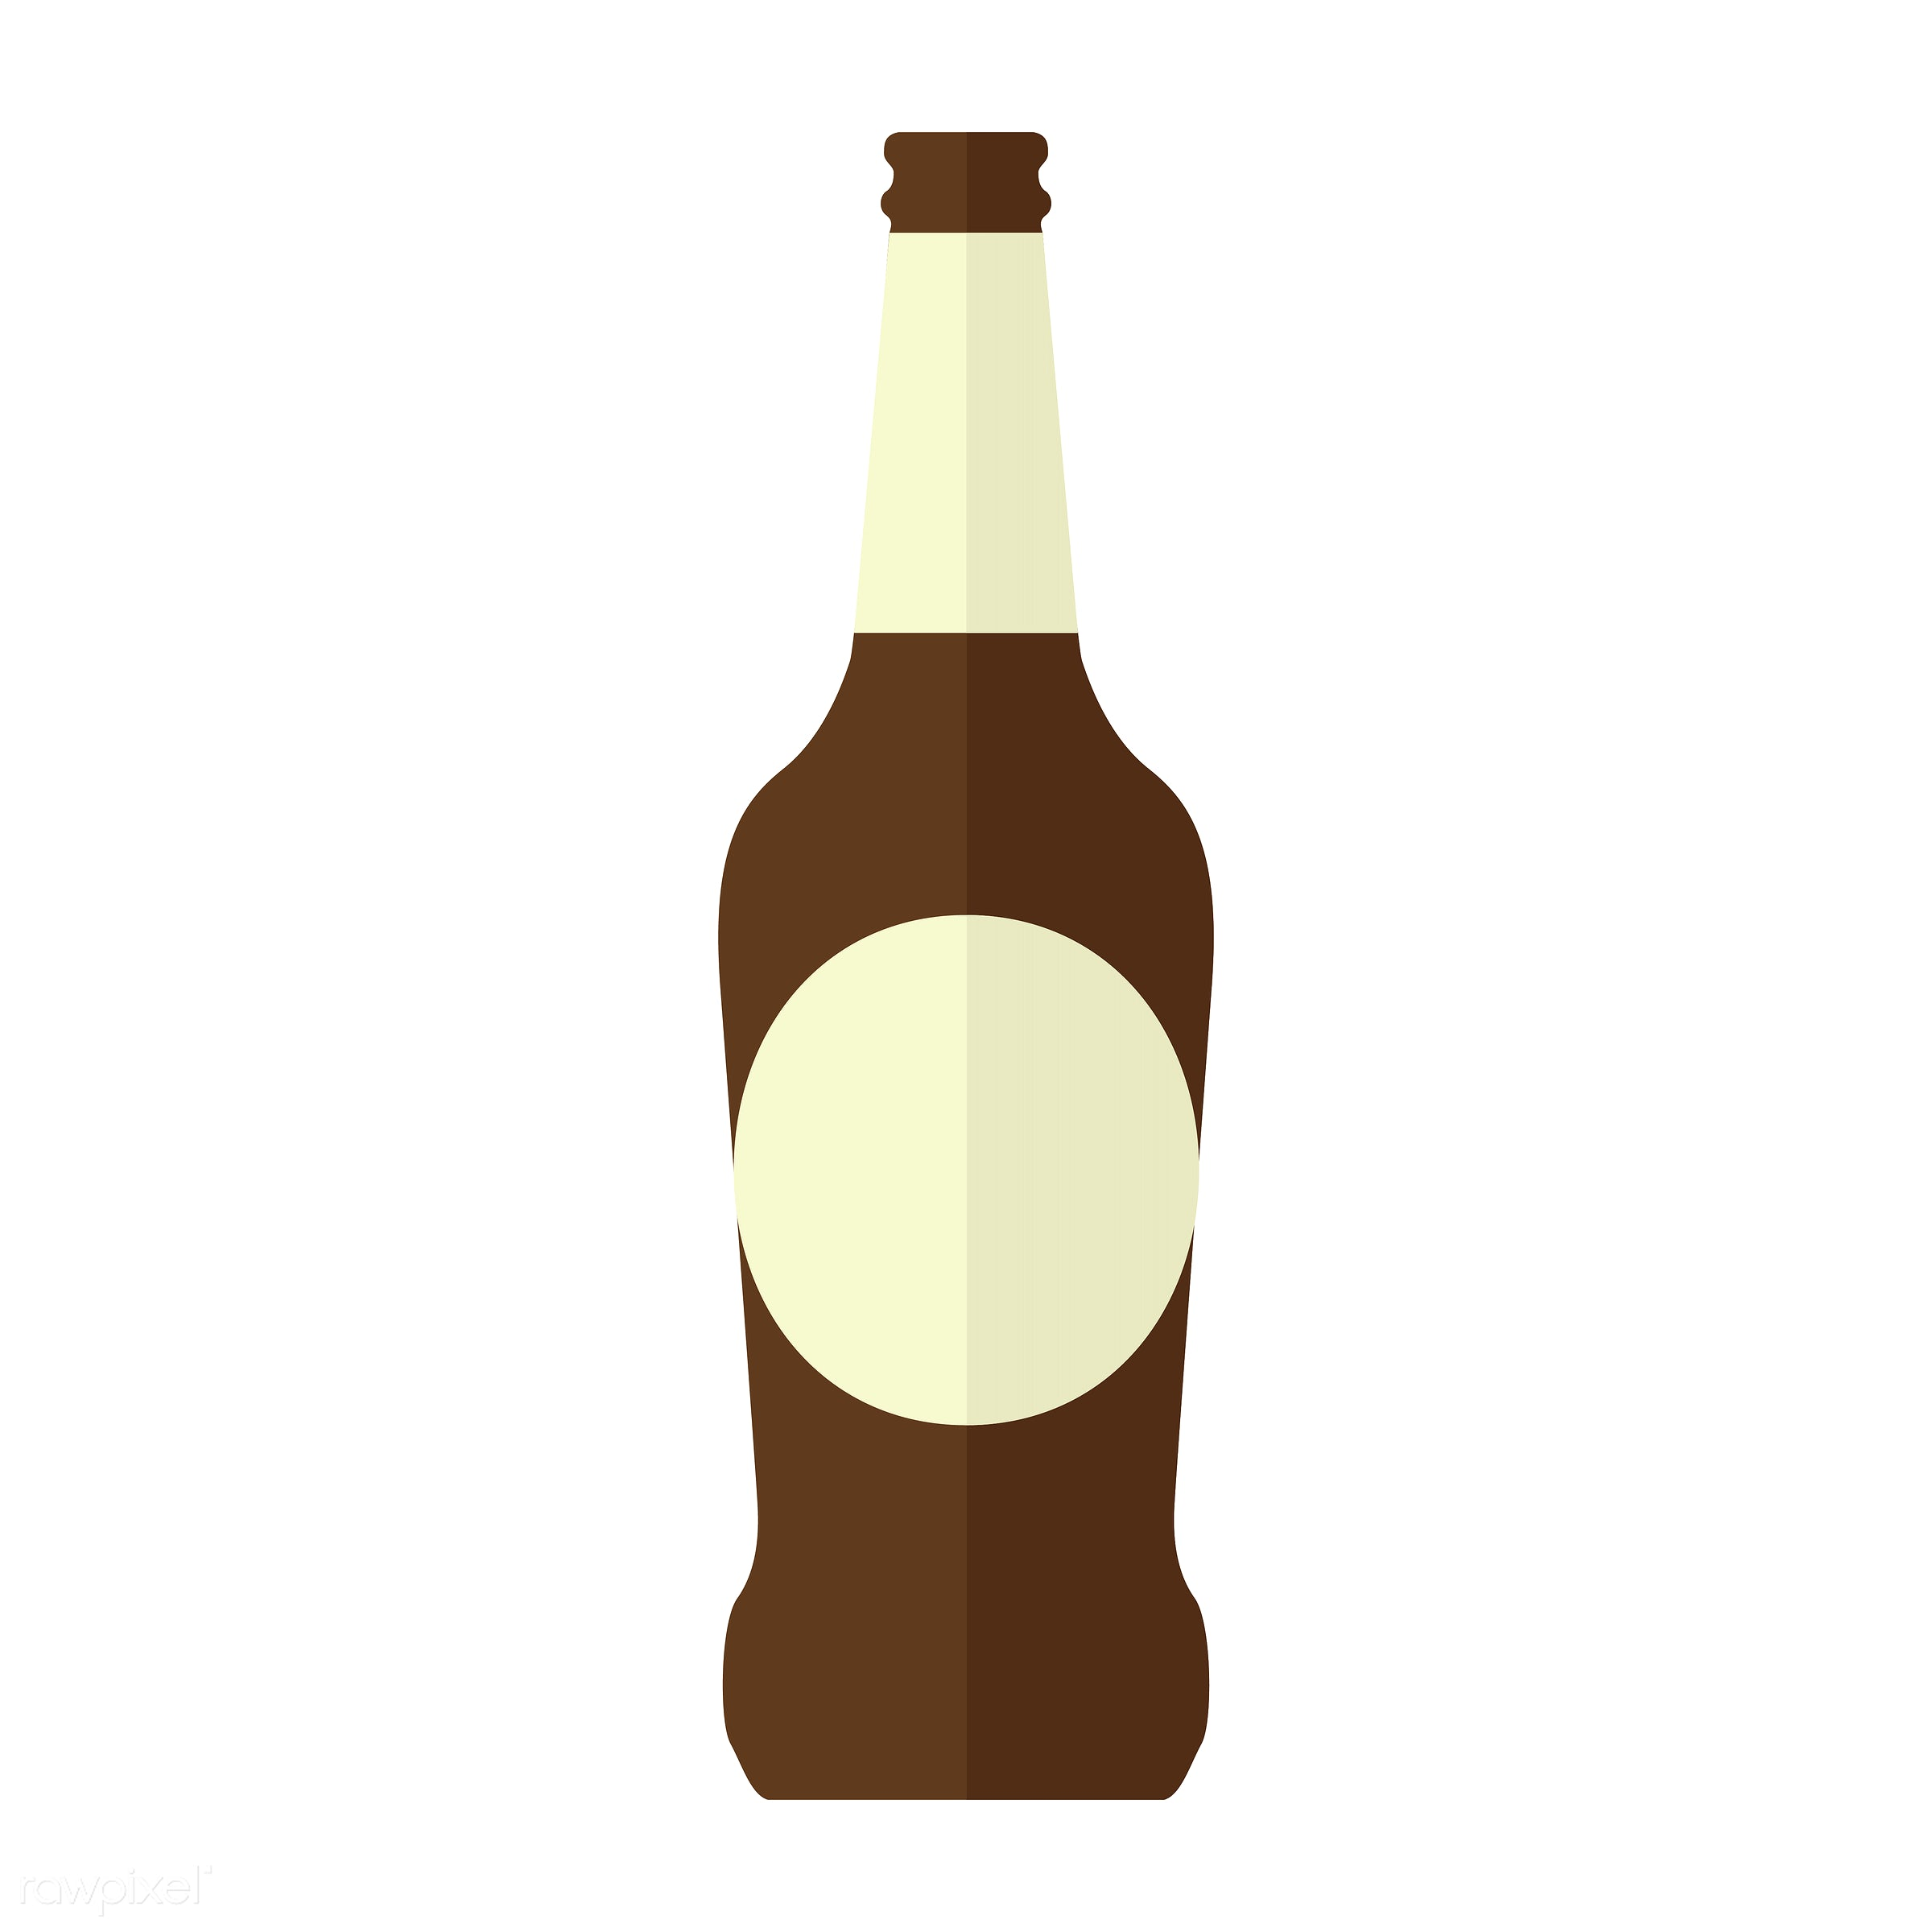 vector, graphic, illustration, icon, symbol, colorful, cute, drink, beverage, water, brown, glass bottle, beer